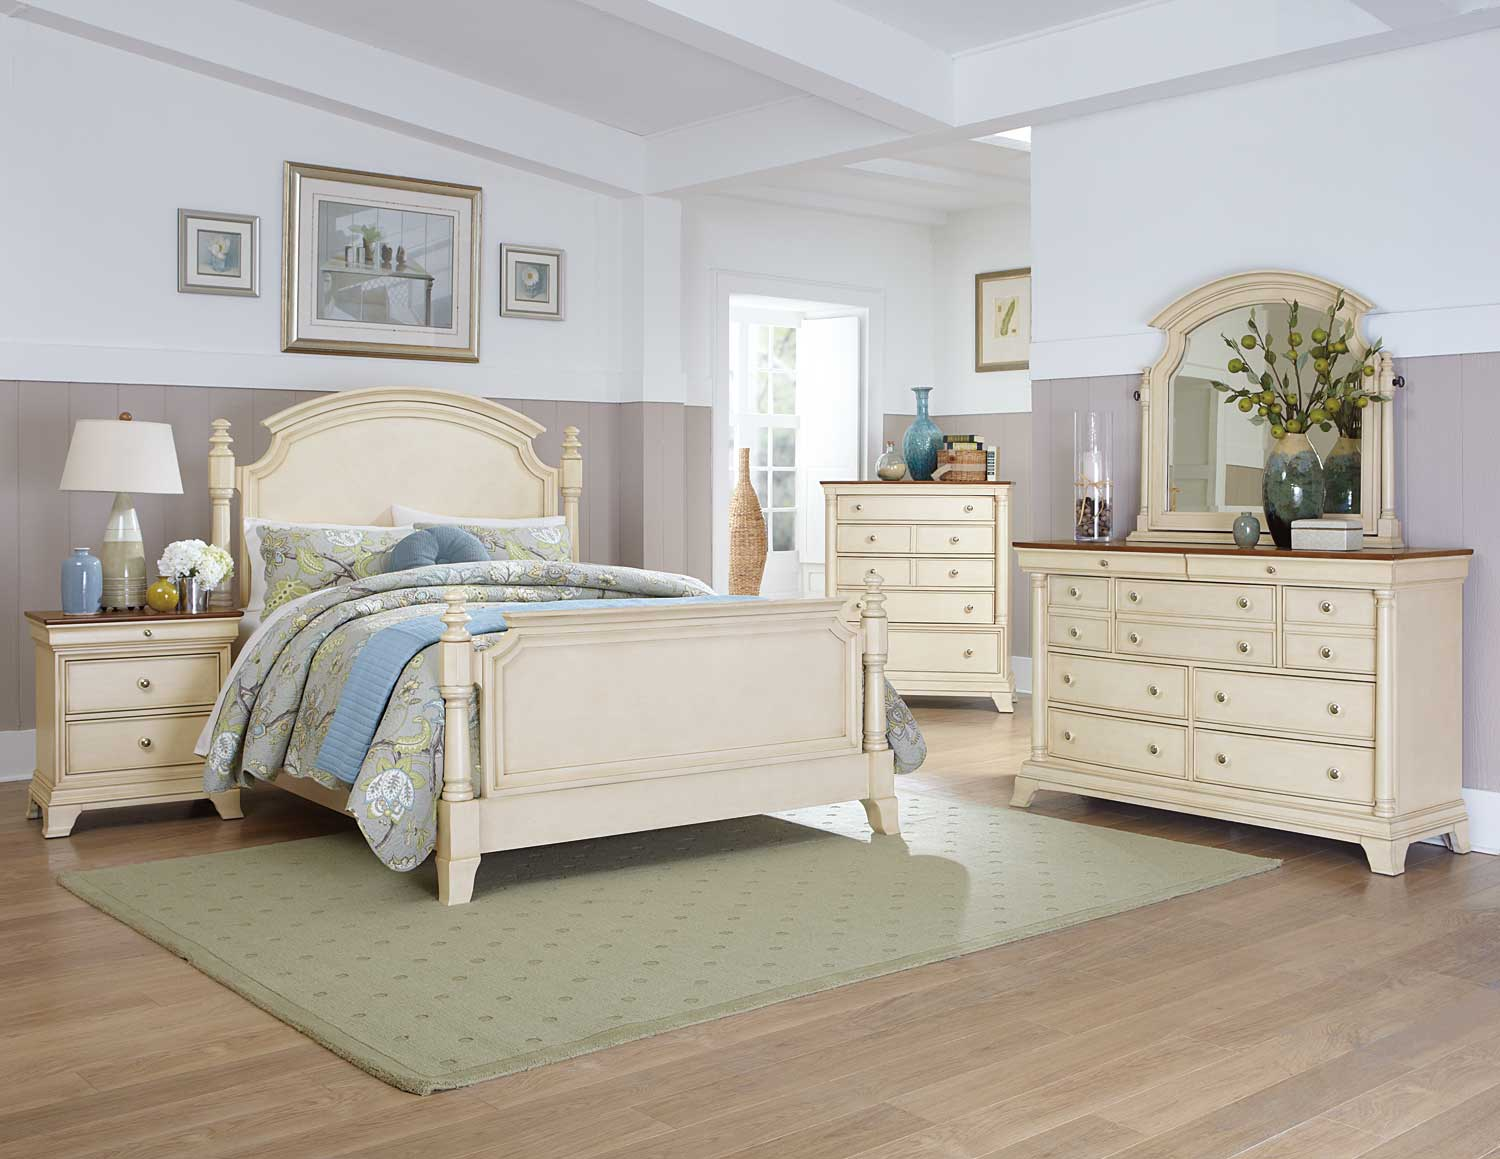 Homelegance inglewood ii bedroom set white b1402w bed for White bedroom furniture